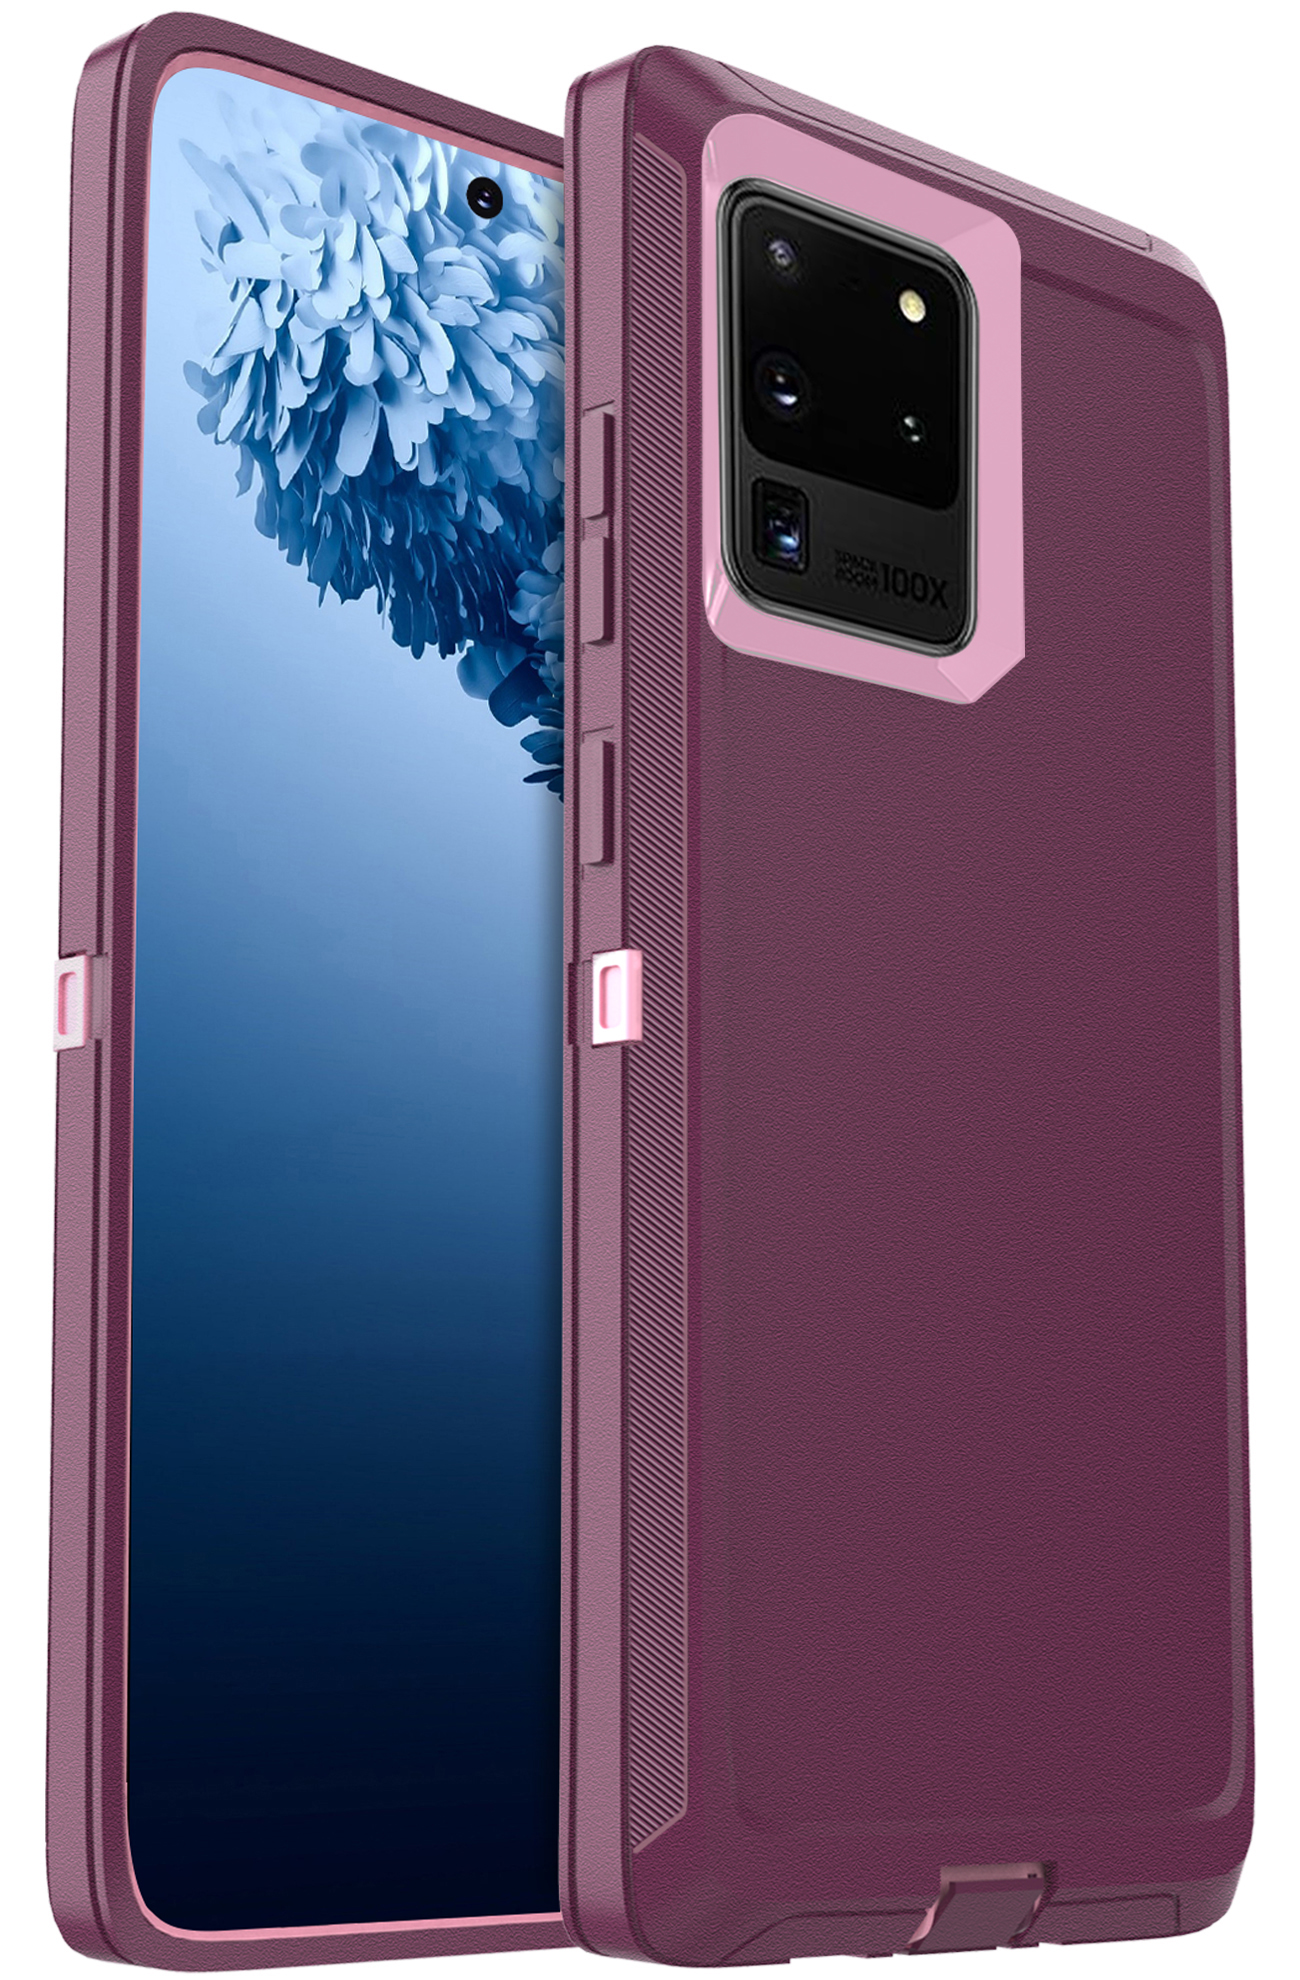 FOGEEK Compatible with Samsung Galaxy S20 Ultra 5G Case, Heavy Duty Rugged Case, Protective Cover (Shockproof)(Drop Proof) for Galaxy S20 Ultra 5G (6.9 inch) 2020 (Wine/Pink)